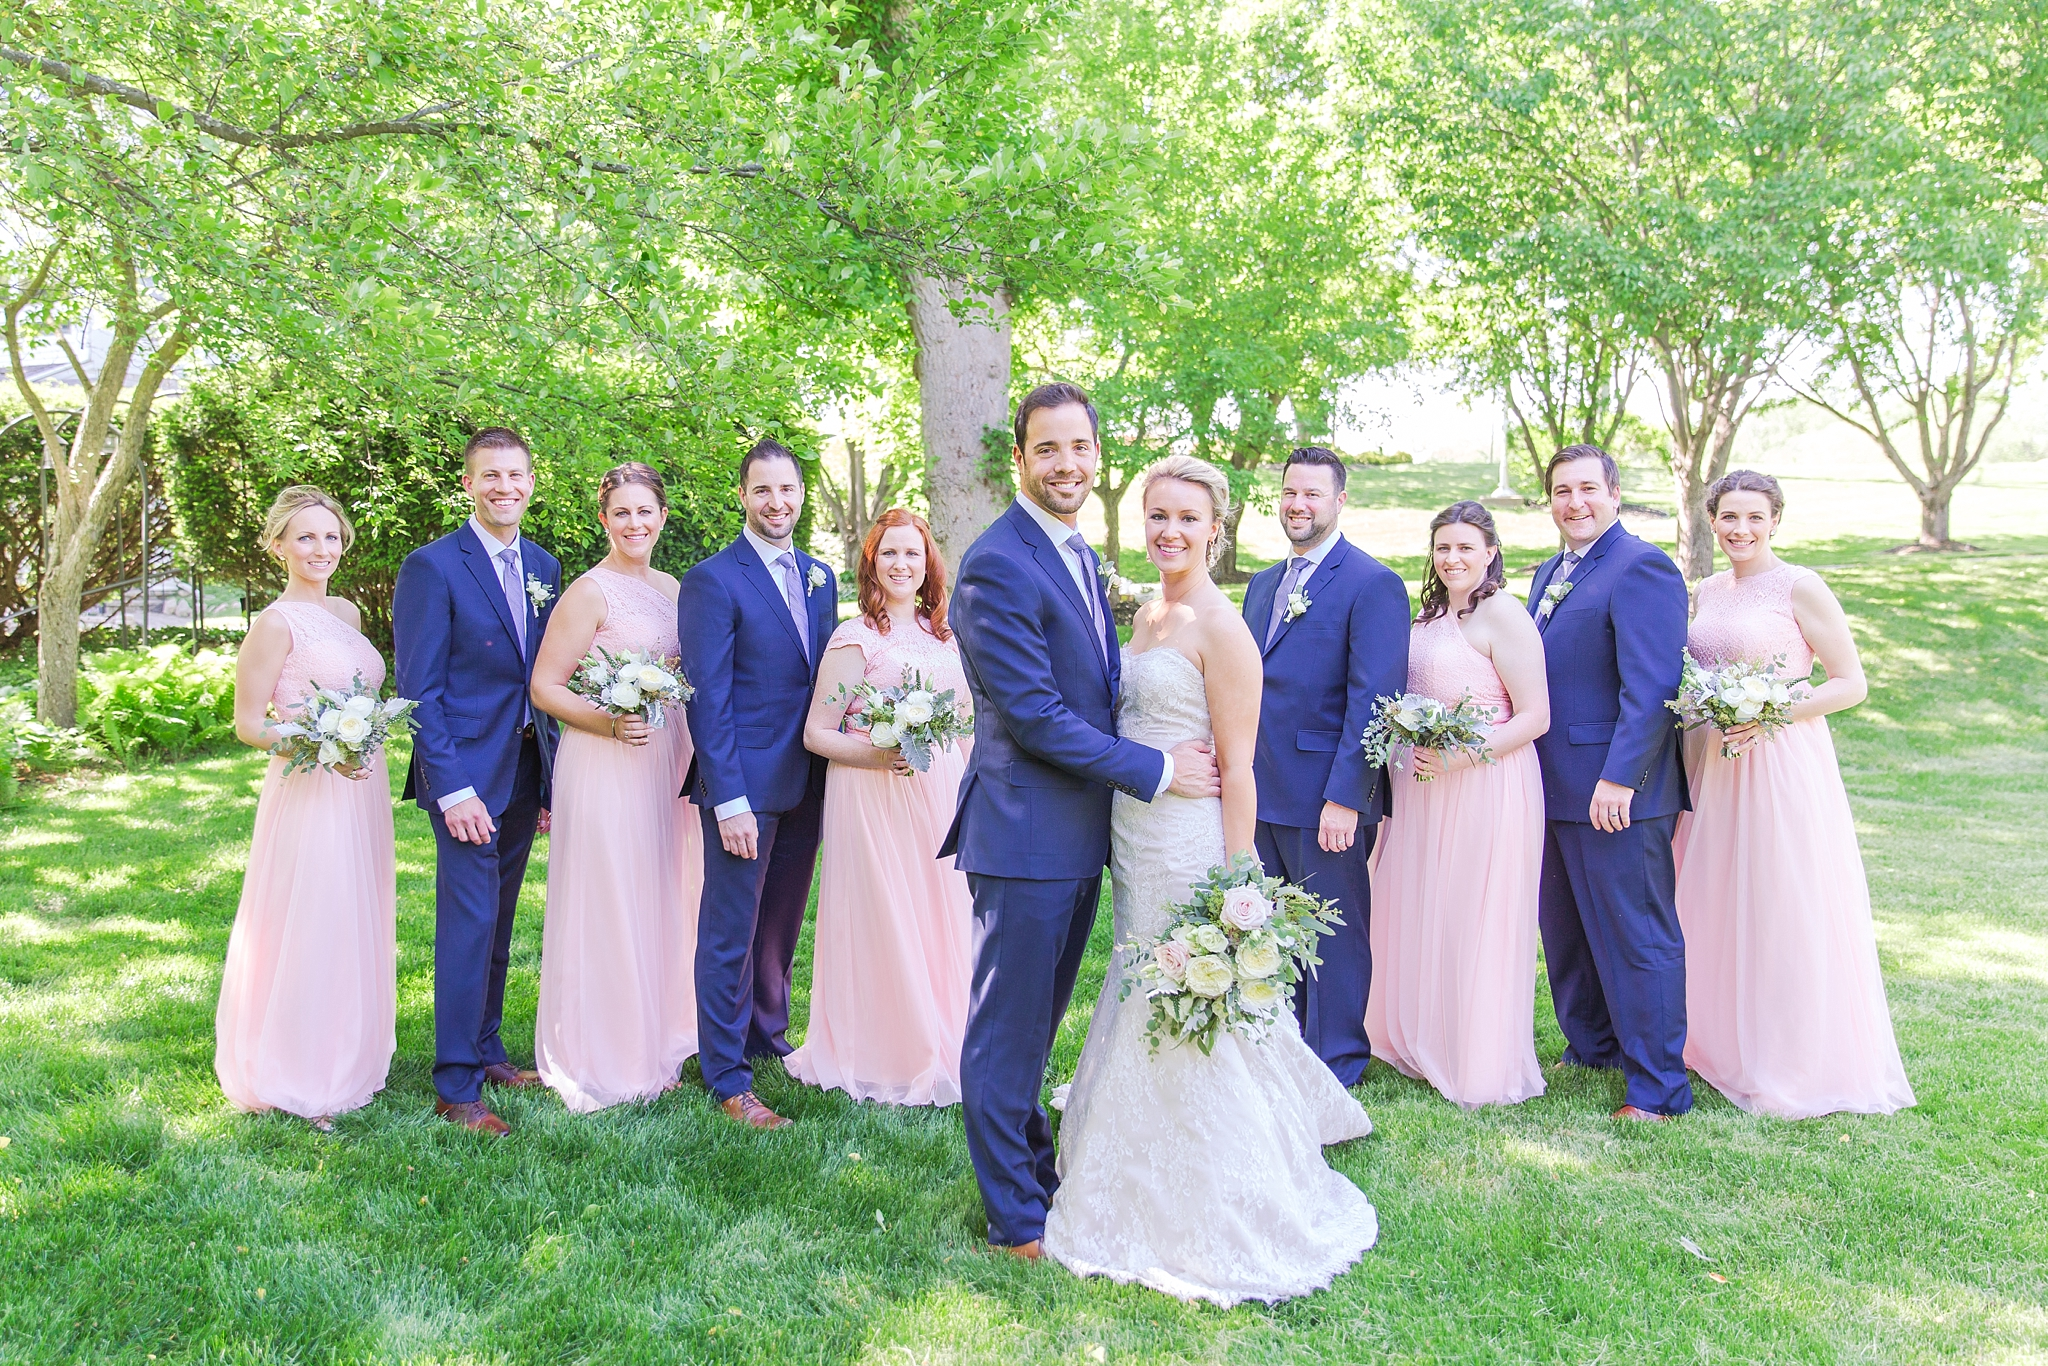 fun-candid-laid-back-wedding-photos-at-wellers-carriage-house-in-saline-michigan-and-at-the-eagle-crest-golf-resort-by-courtney-carolyn-photography_0048.jpg